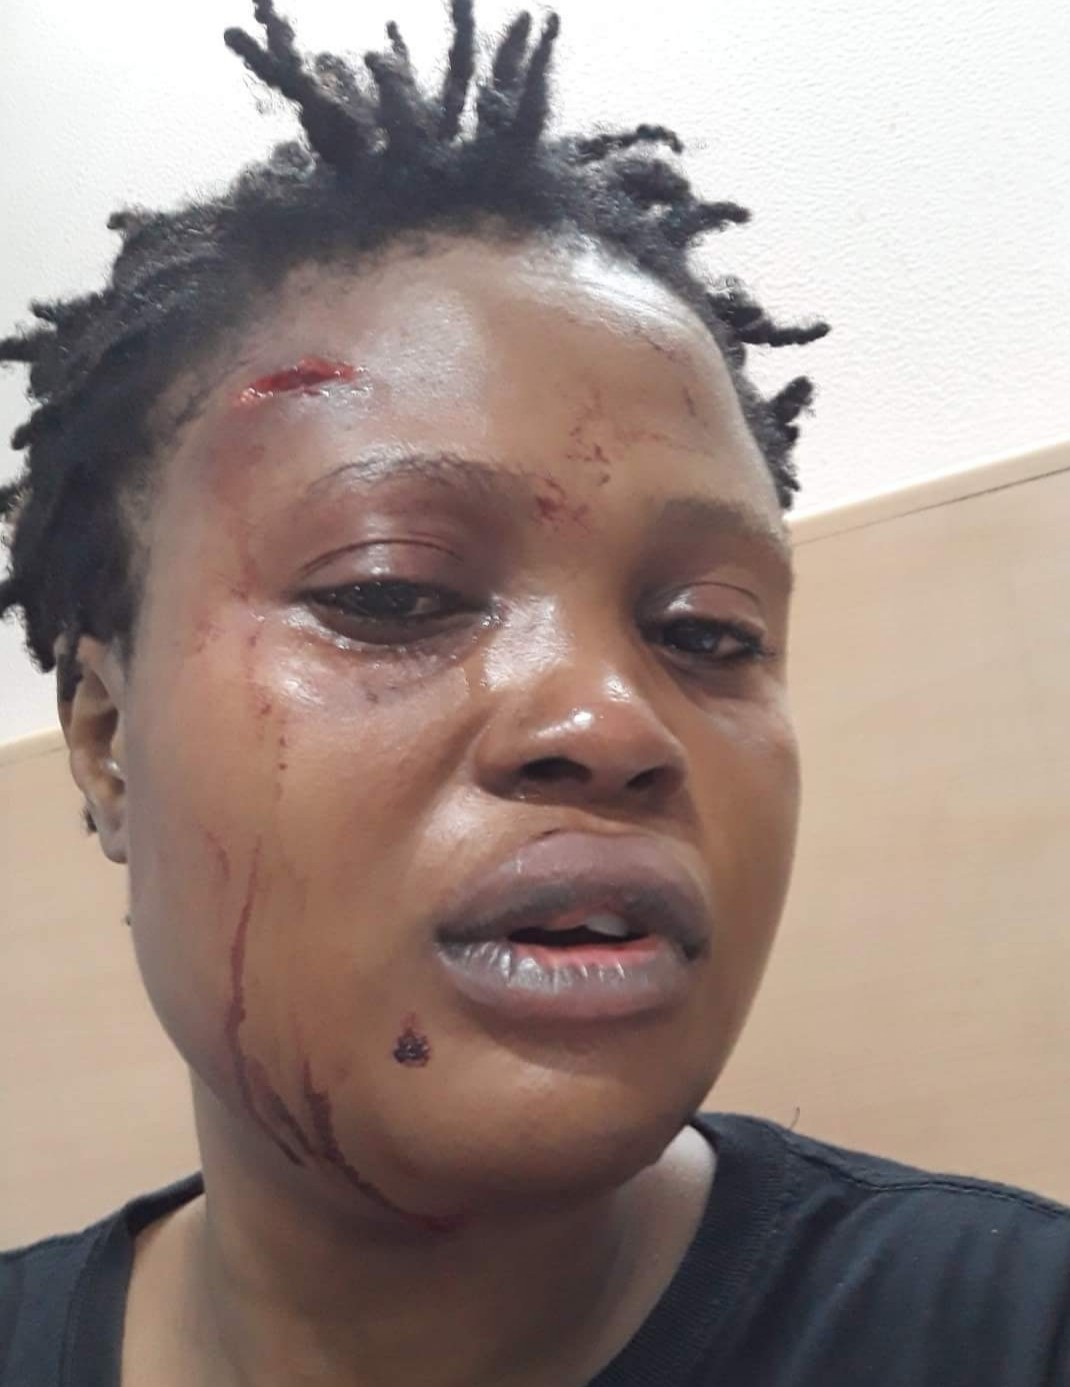 Nigerian woman in hospital after alleged racially motivated attack in India